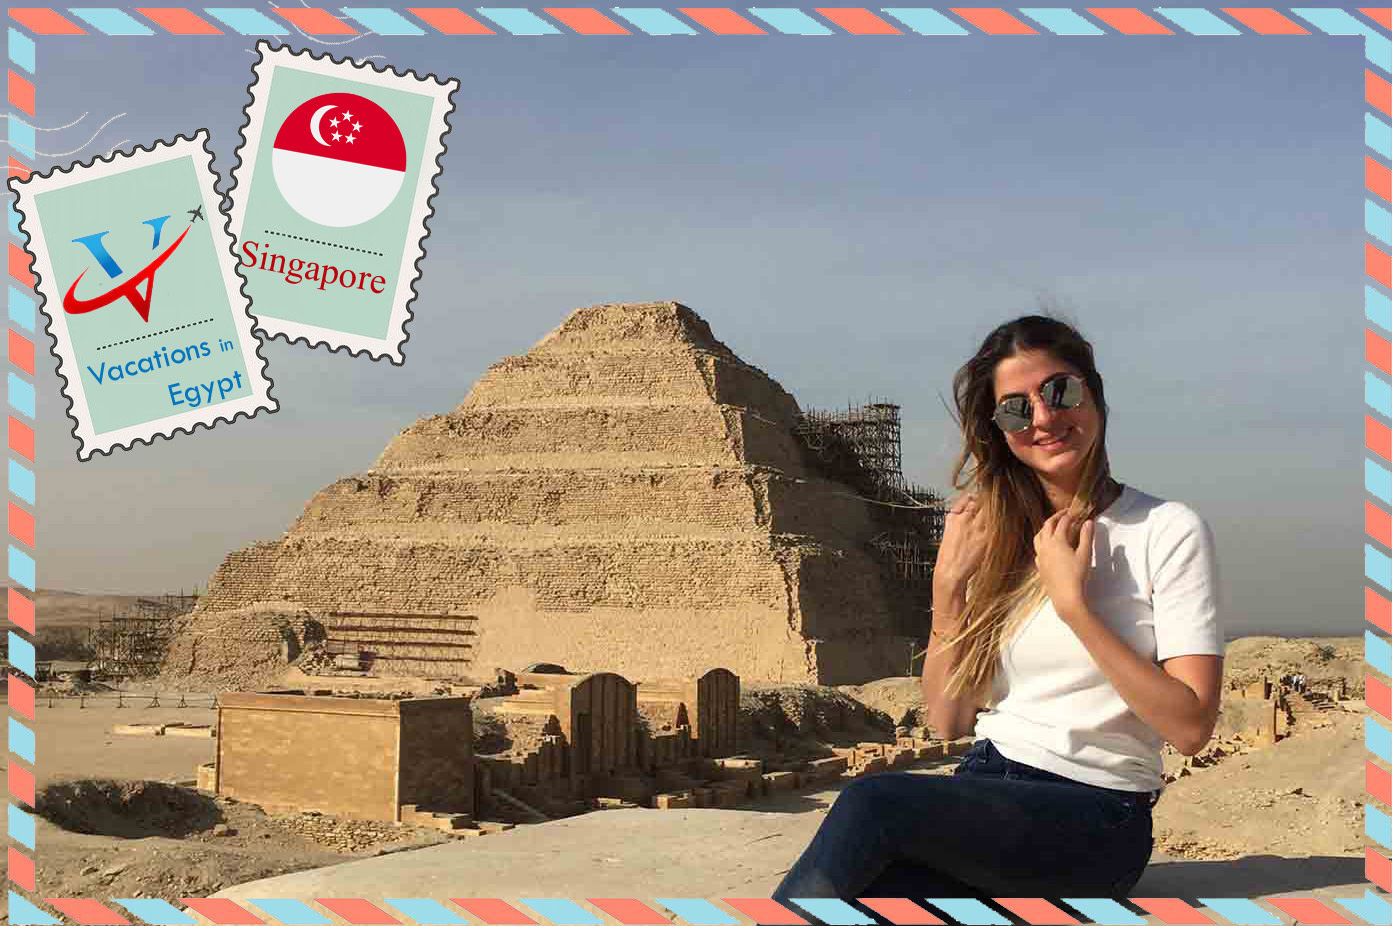 Egypt tours From Singapore